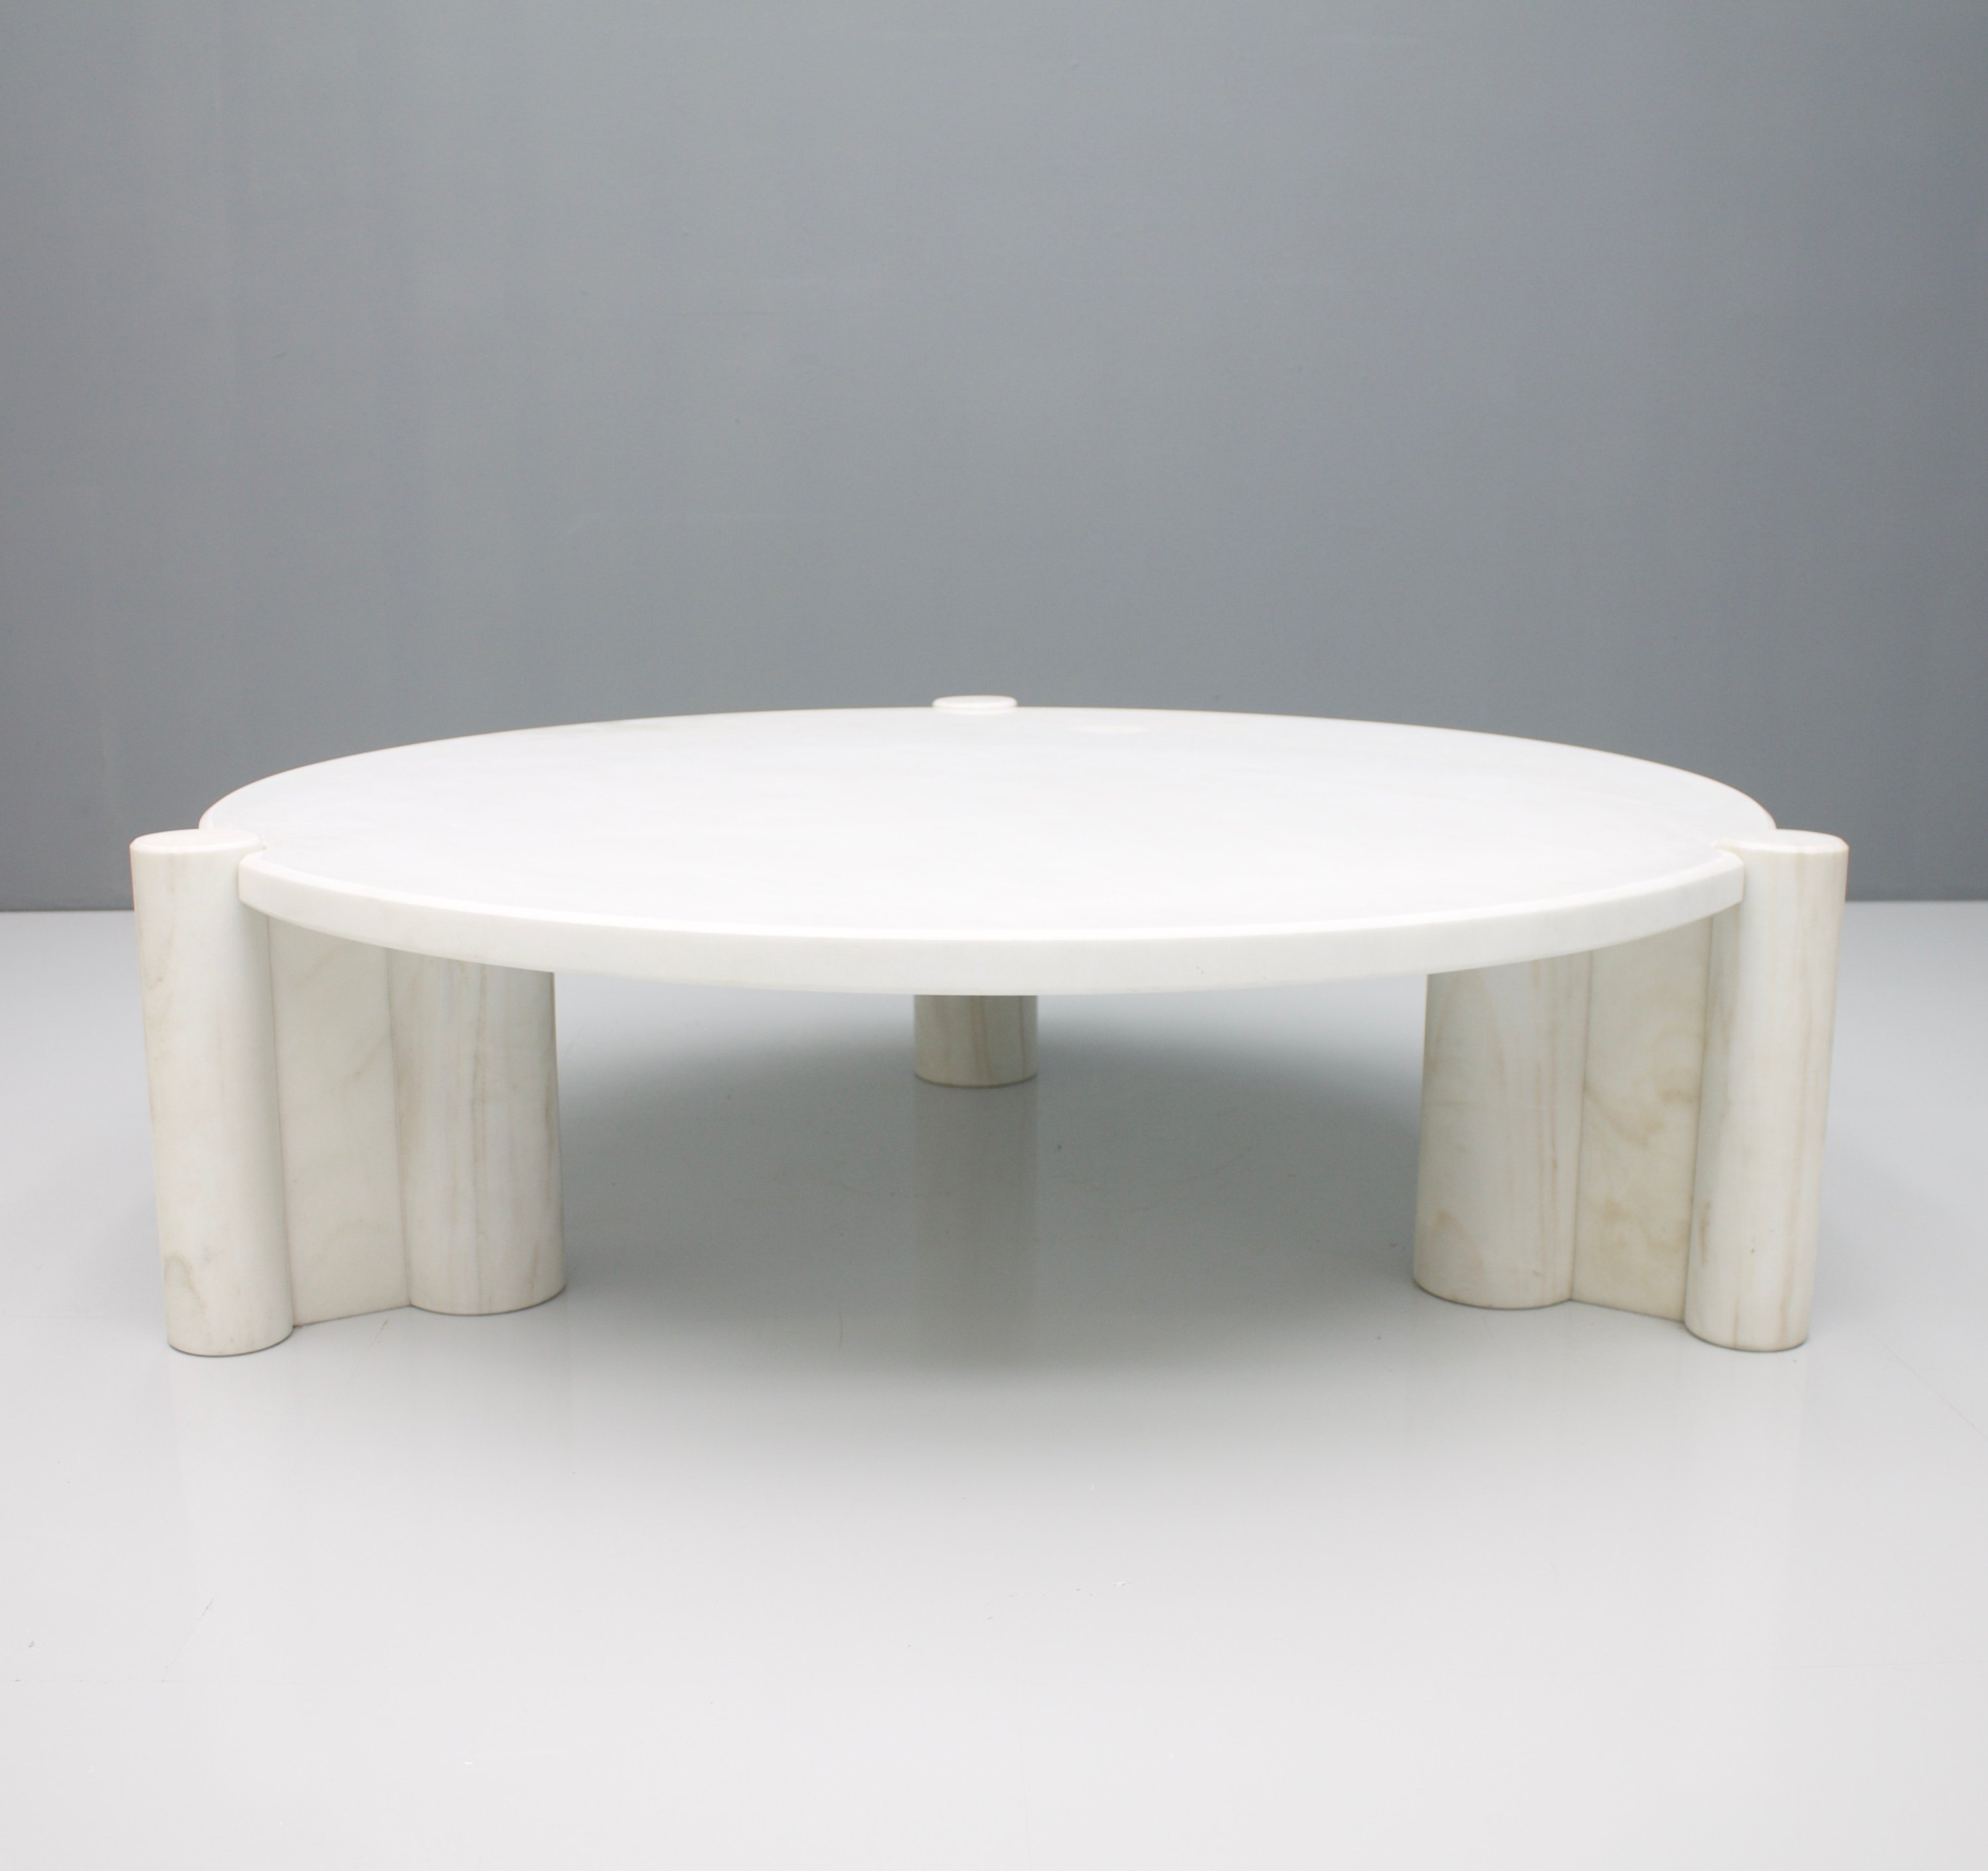 Very Rare Round Jumbo Coffee Table By Gae Aulenti For Knoll 1964